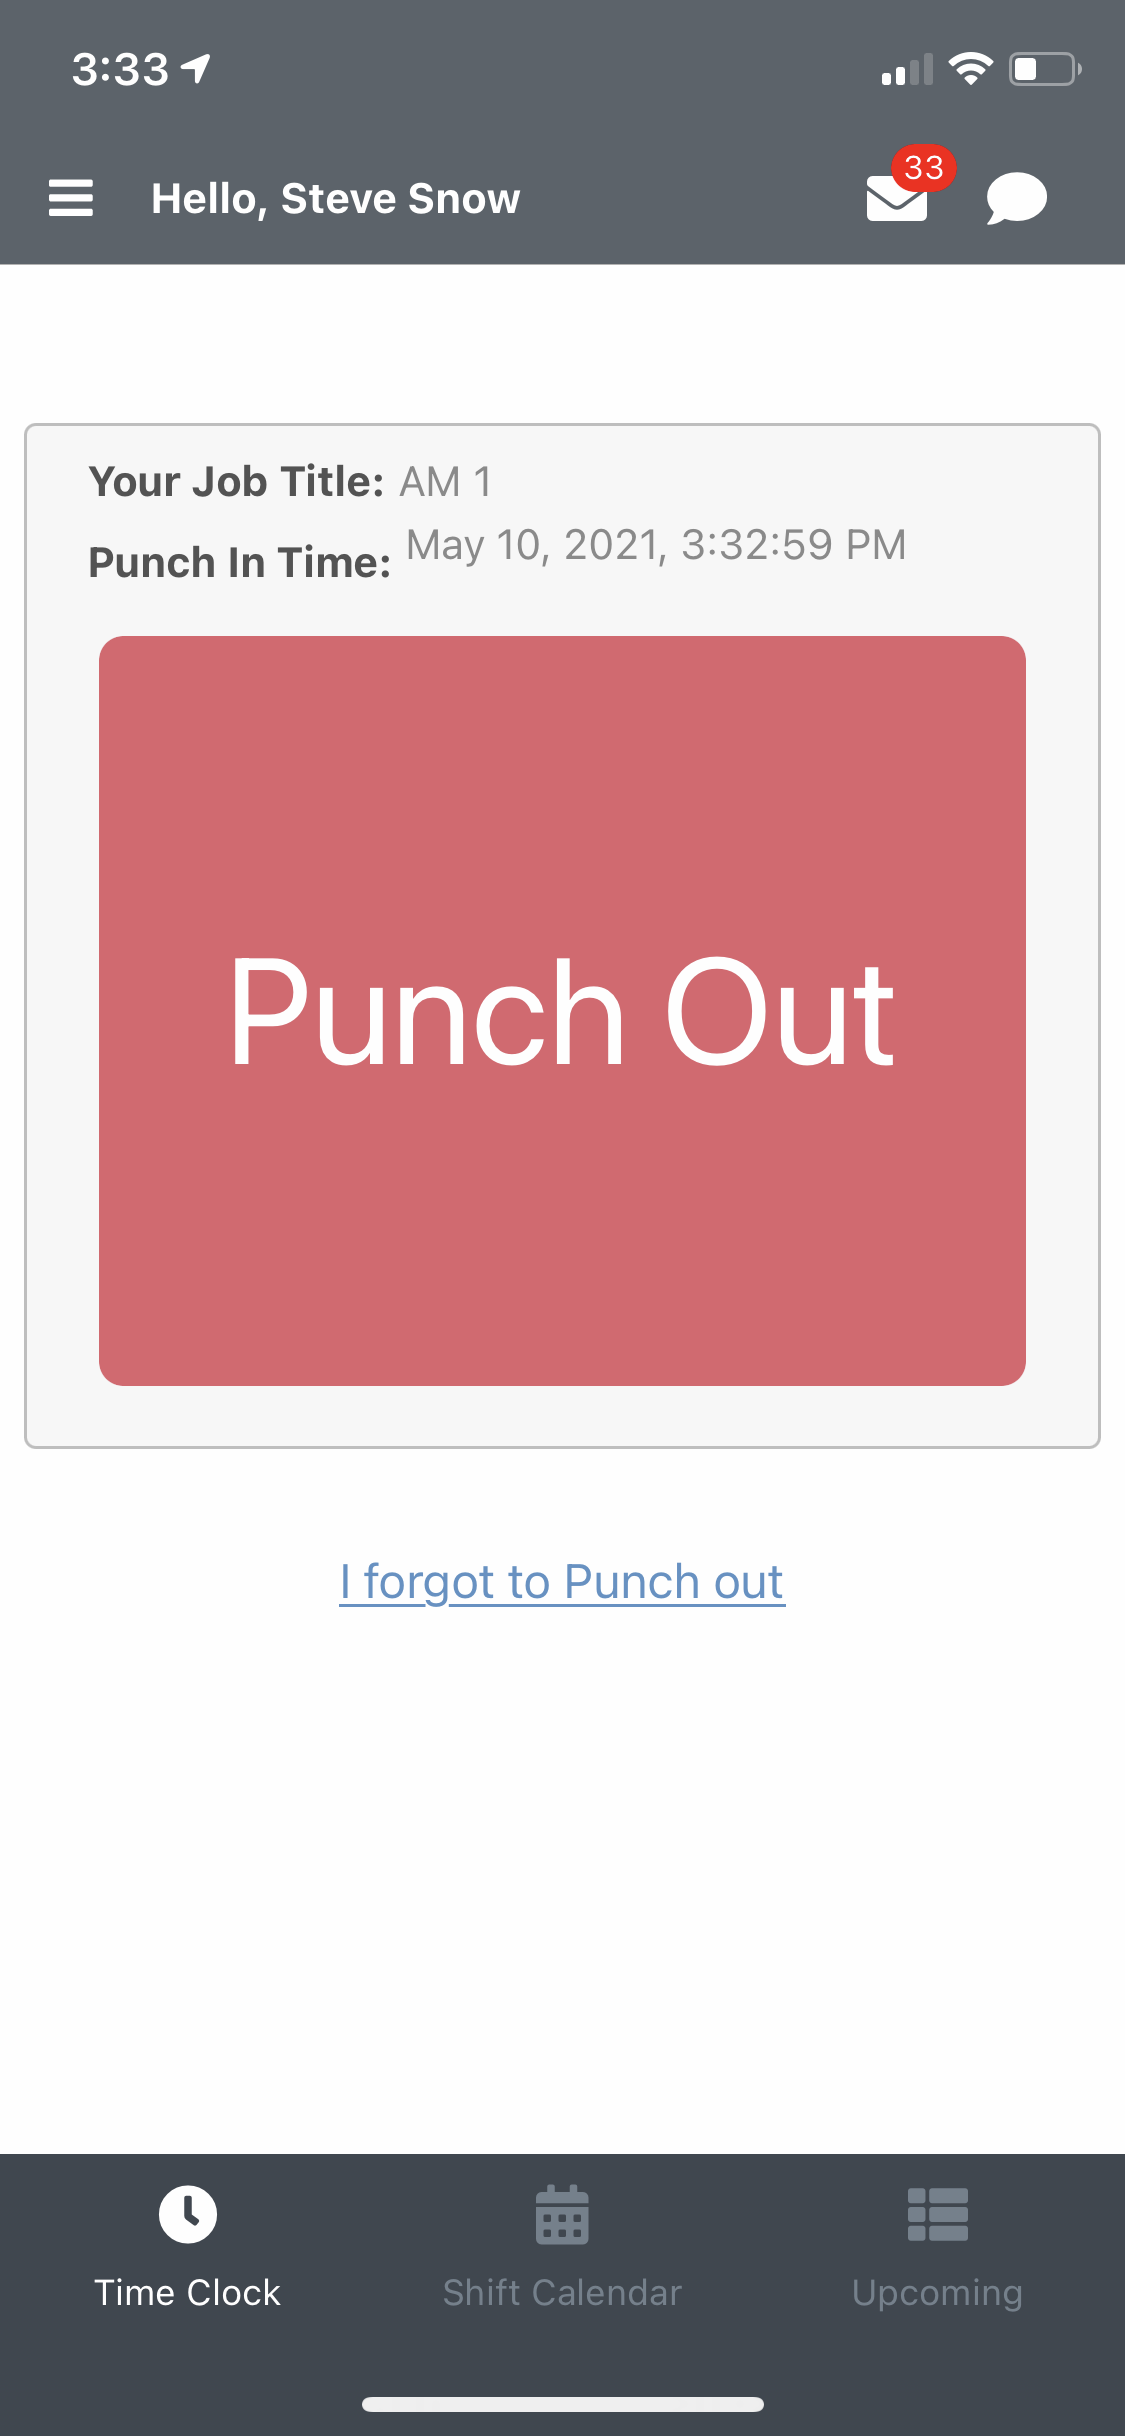 EasyShifts Software - Punch out